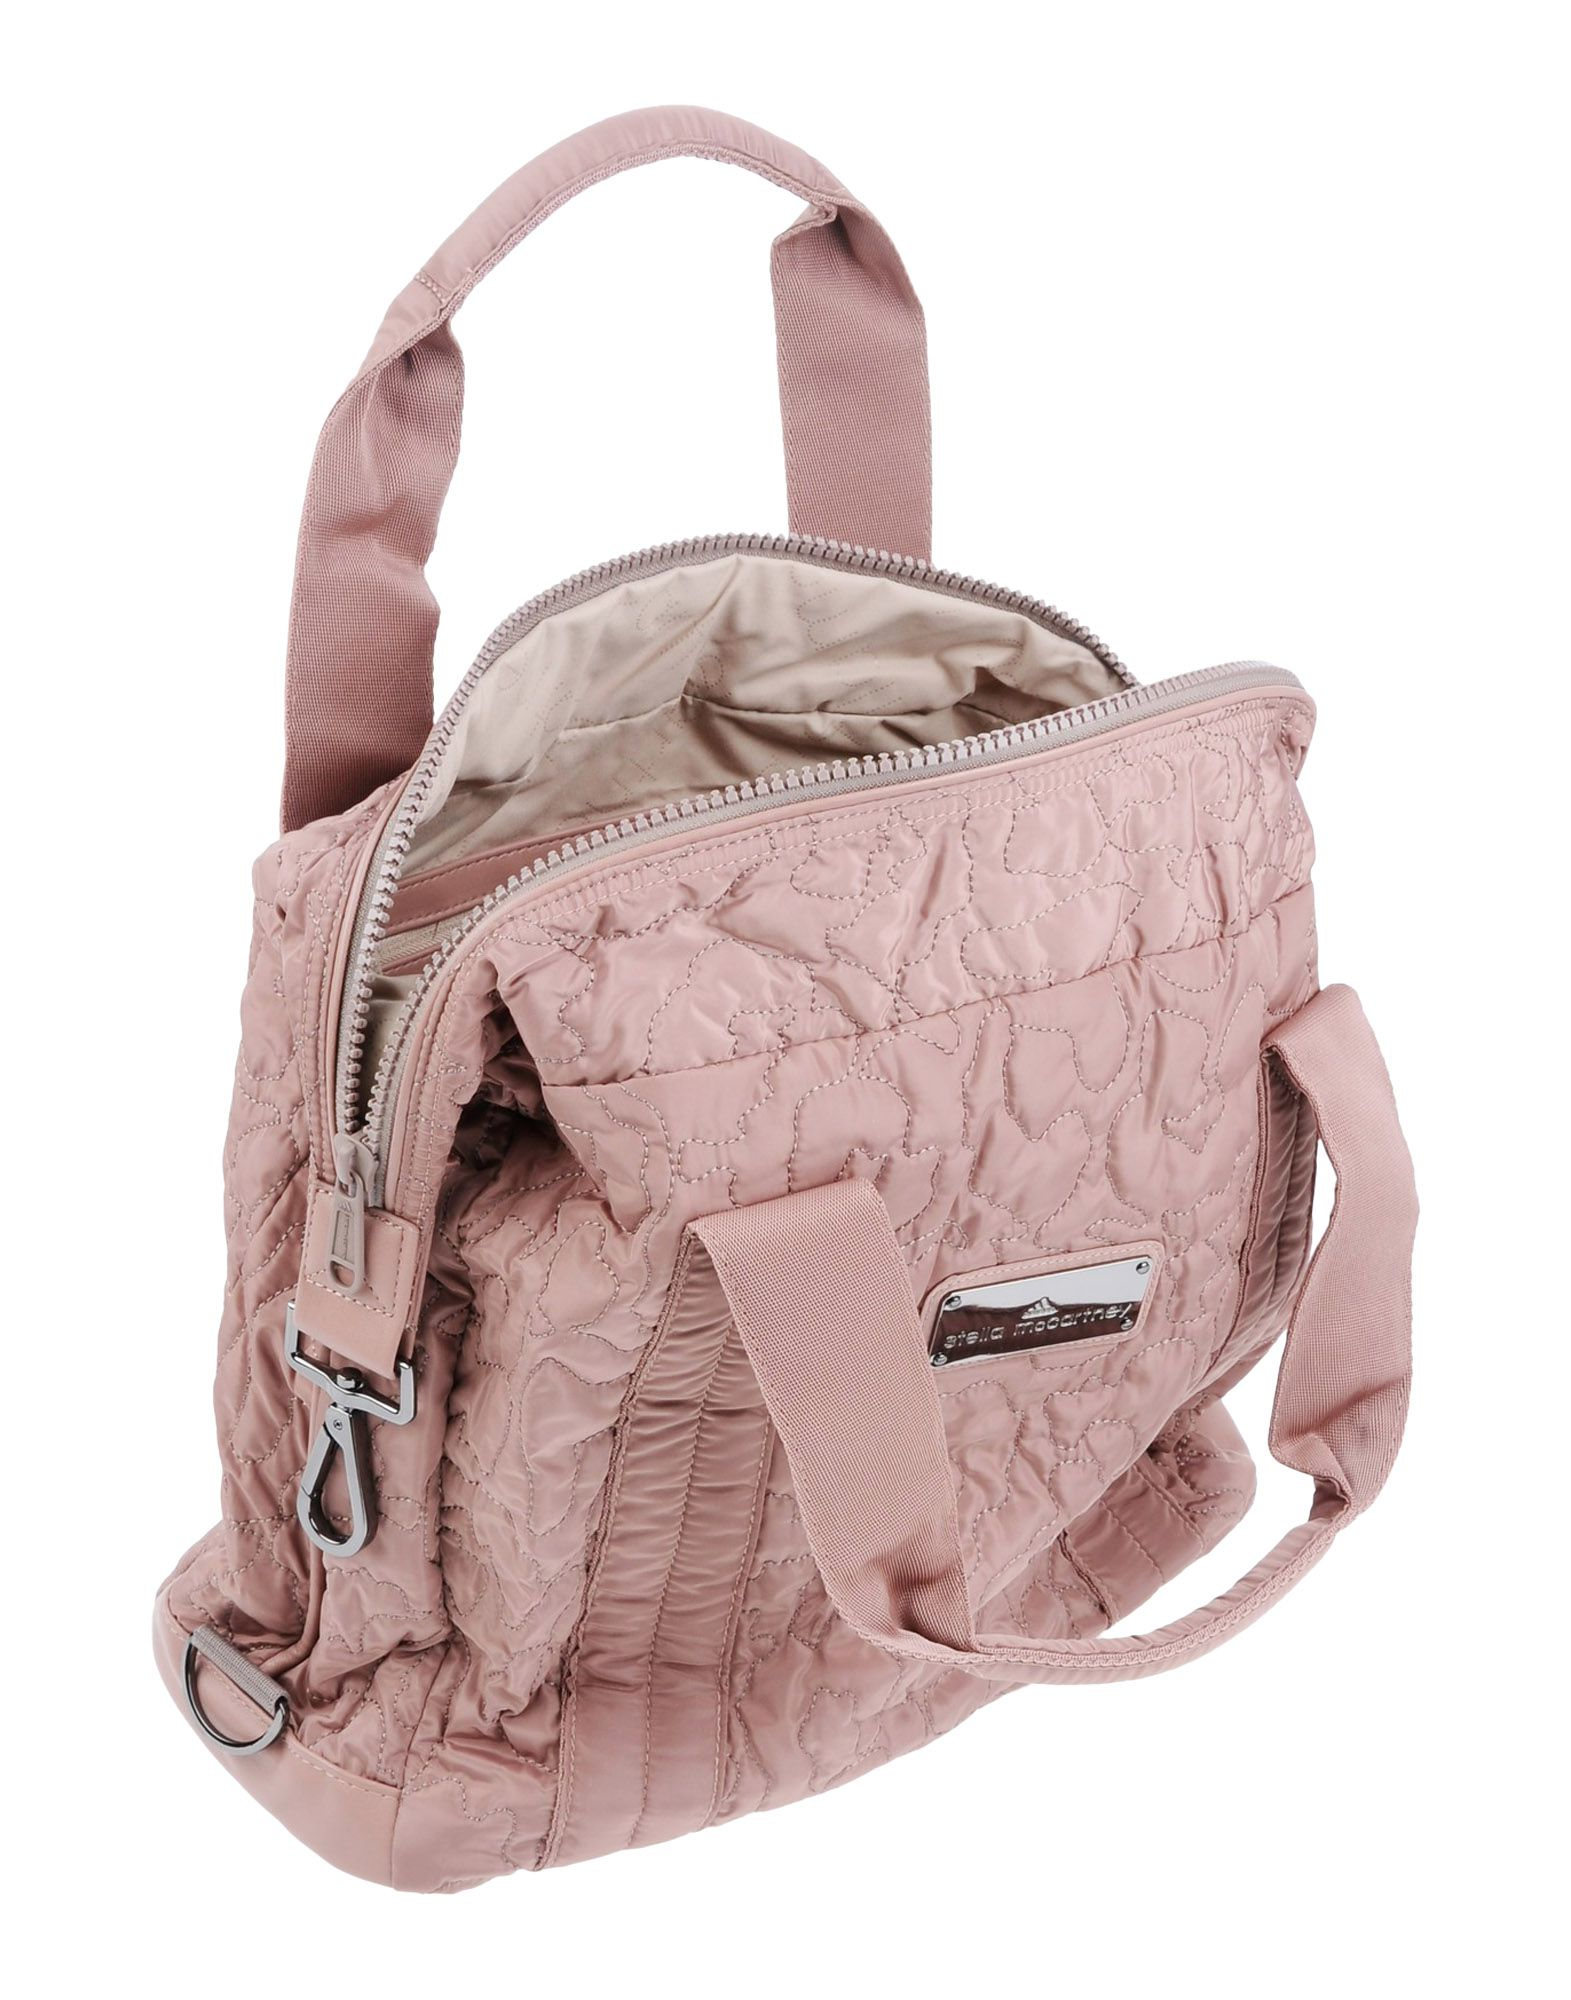 adidas By Stella McCartney Medium Quilted Gym Bag in Pink - Lyst 02a552acce